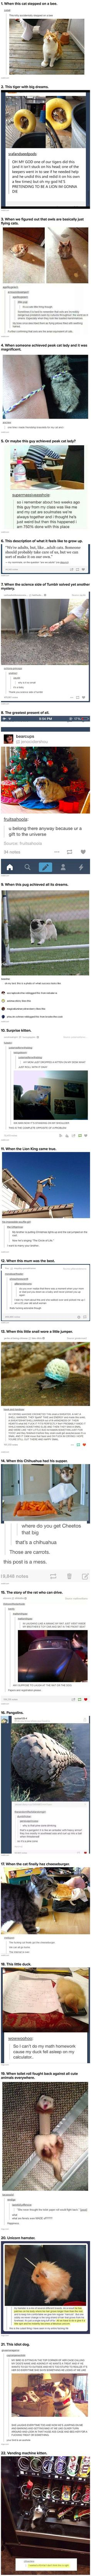 We have rounded up some funny and cute Tumblr posts that just might break the internet.